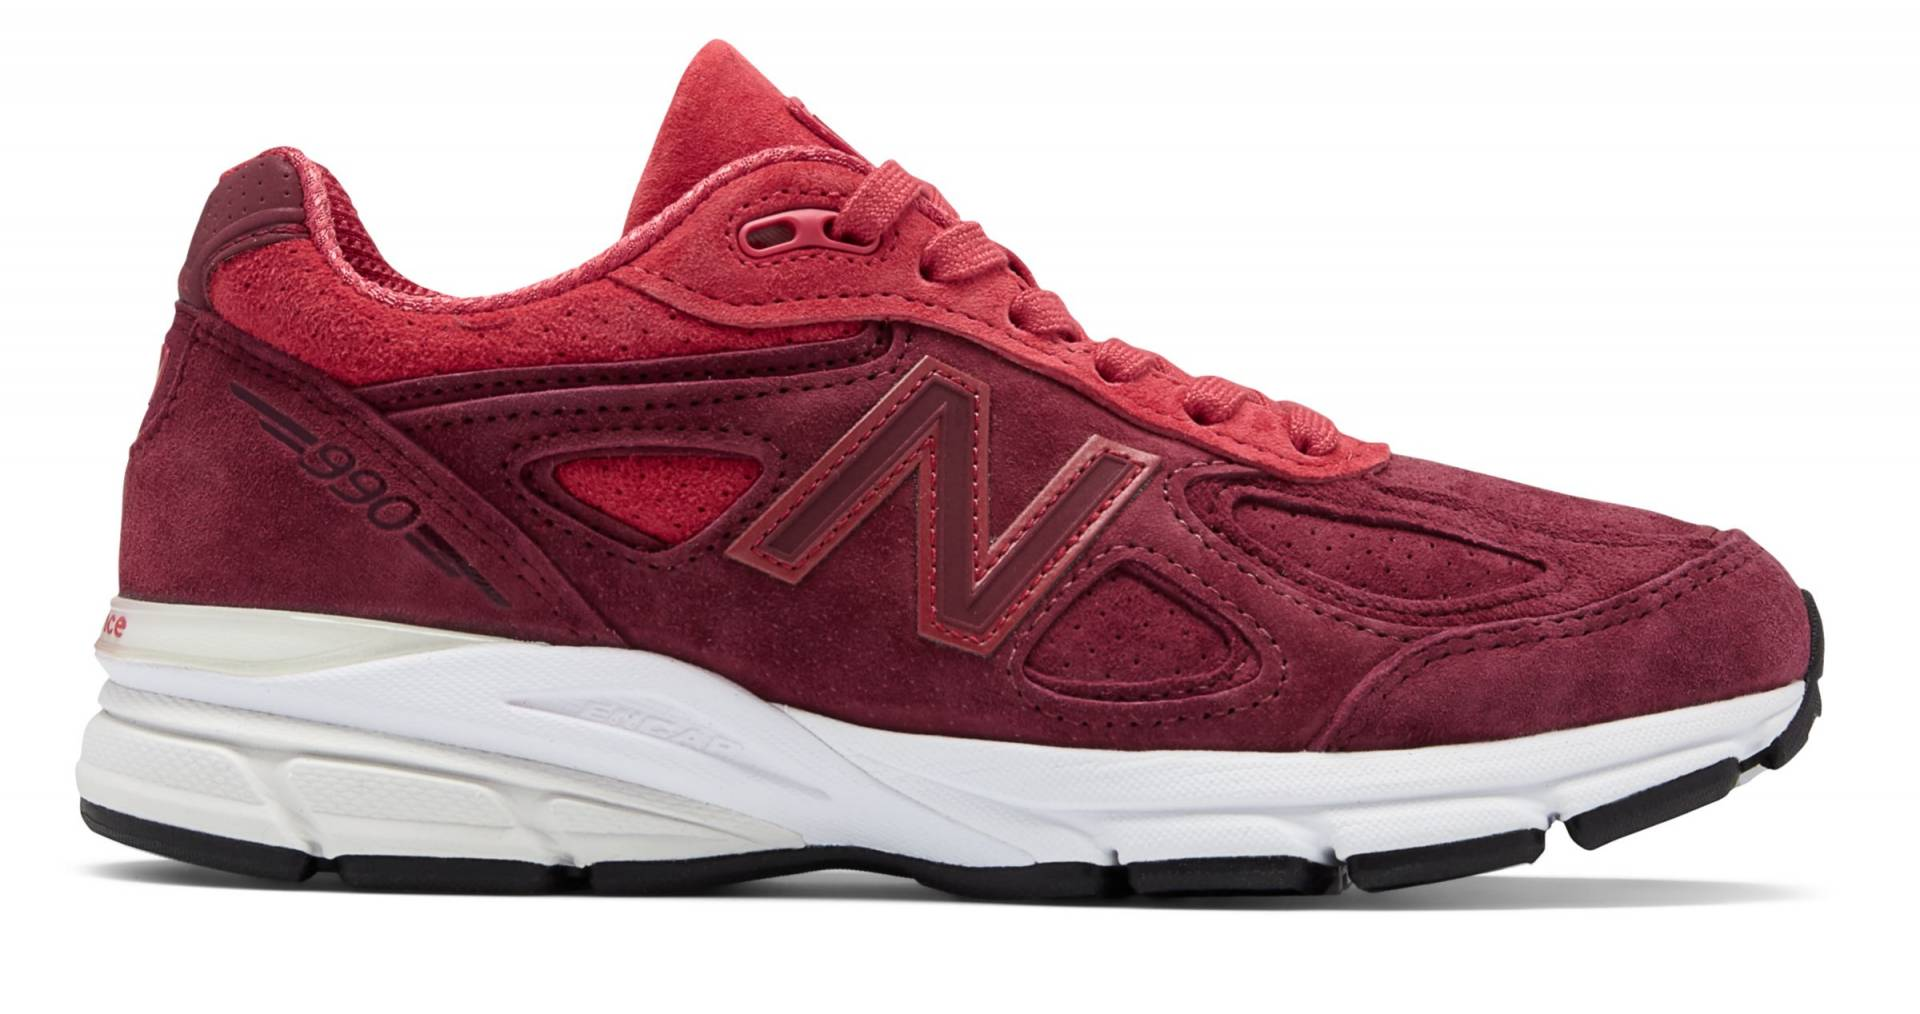 990v4 Made in US de Vortex with Mercury Red